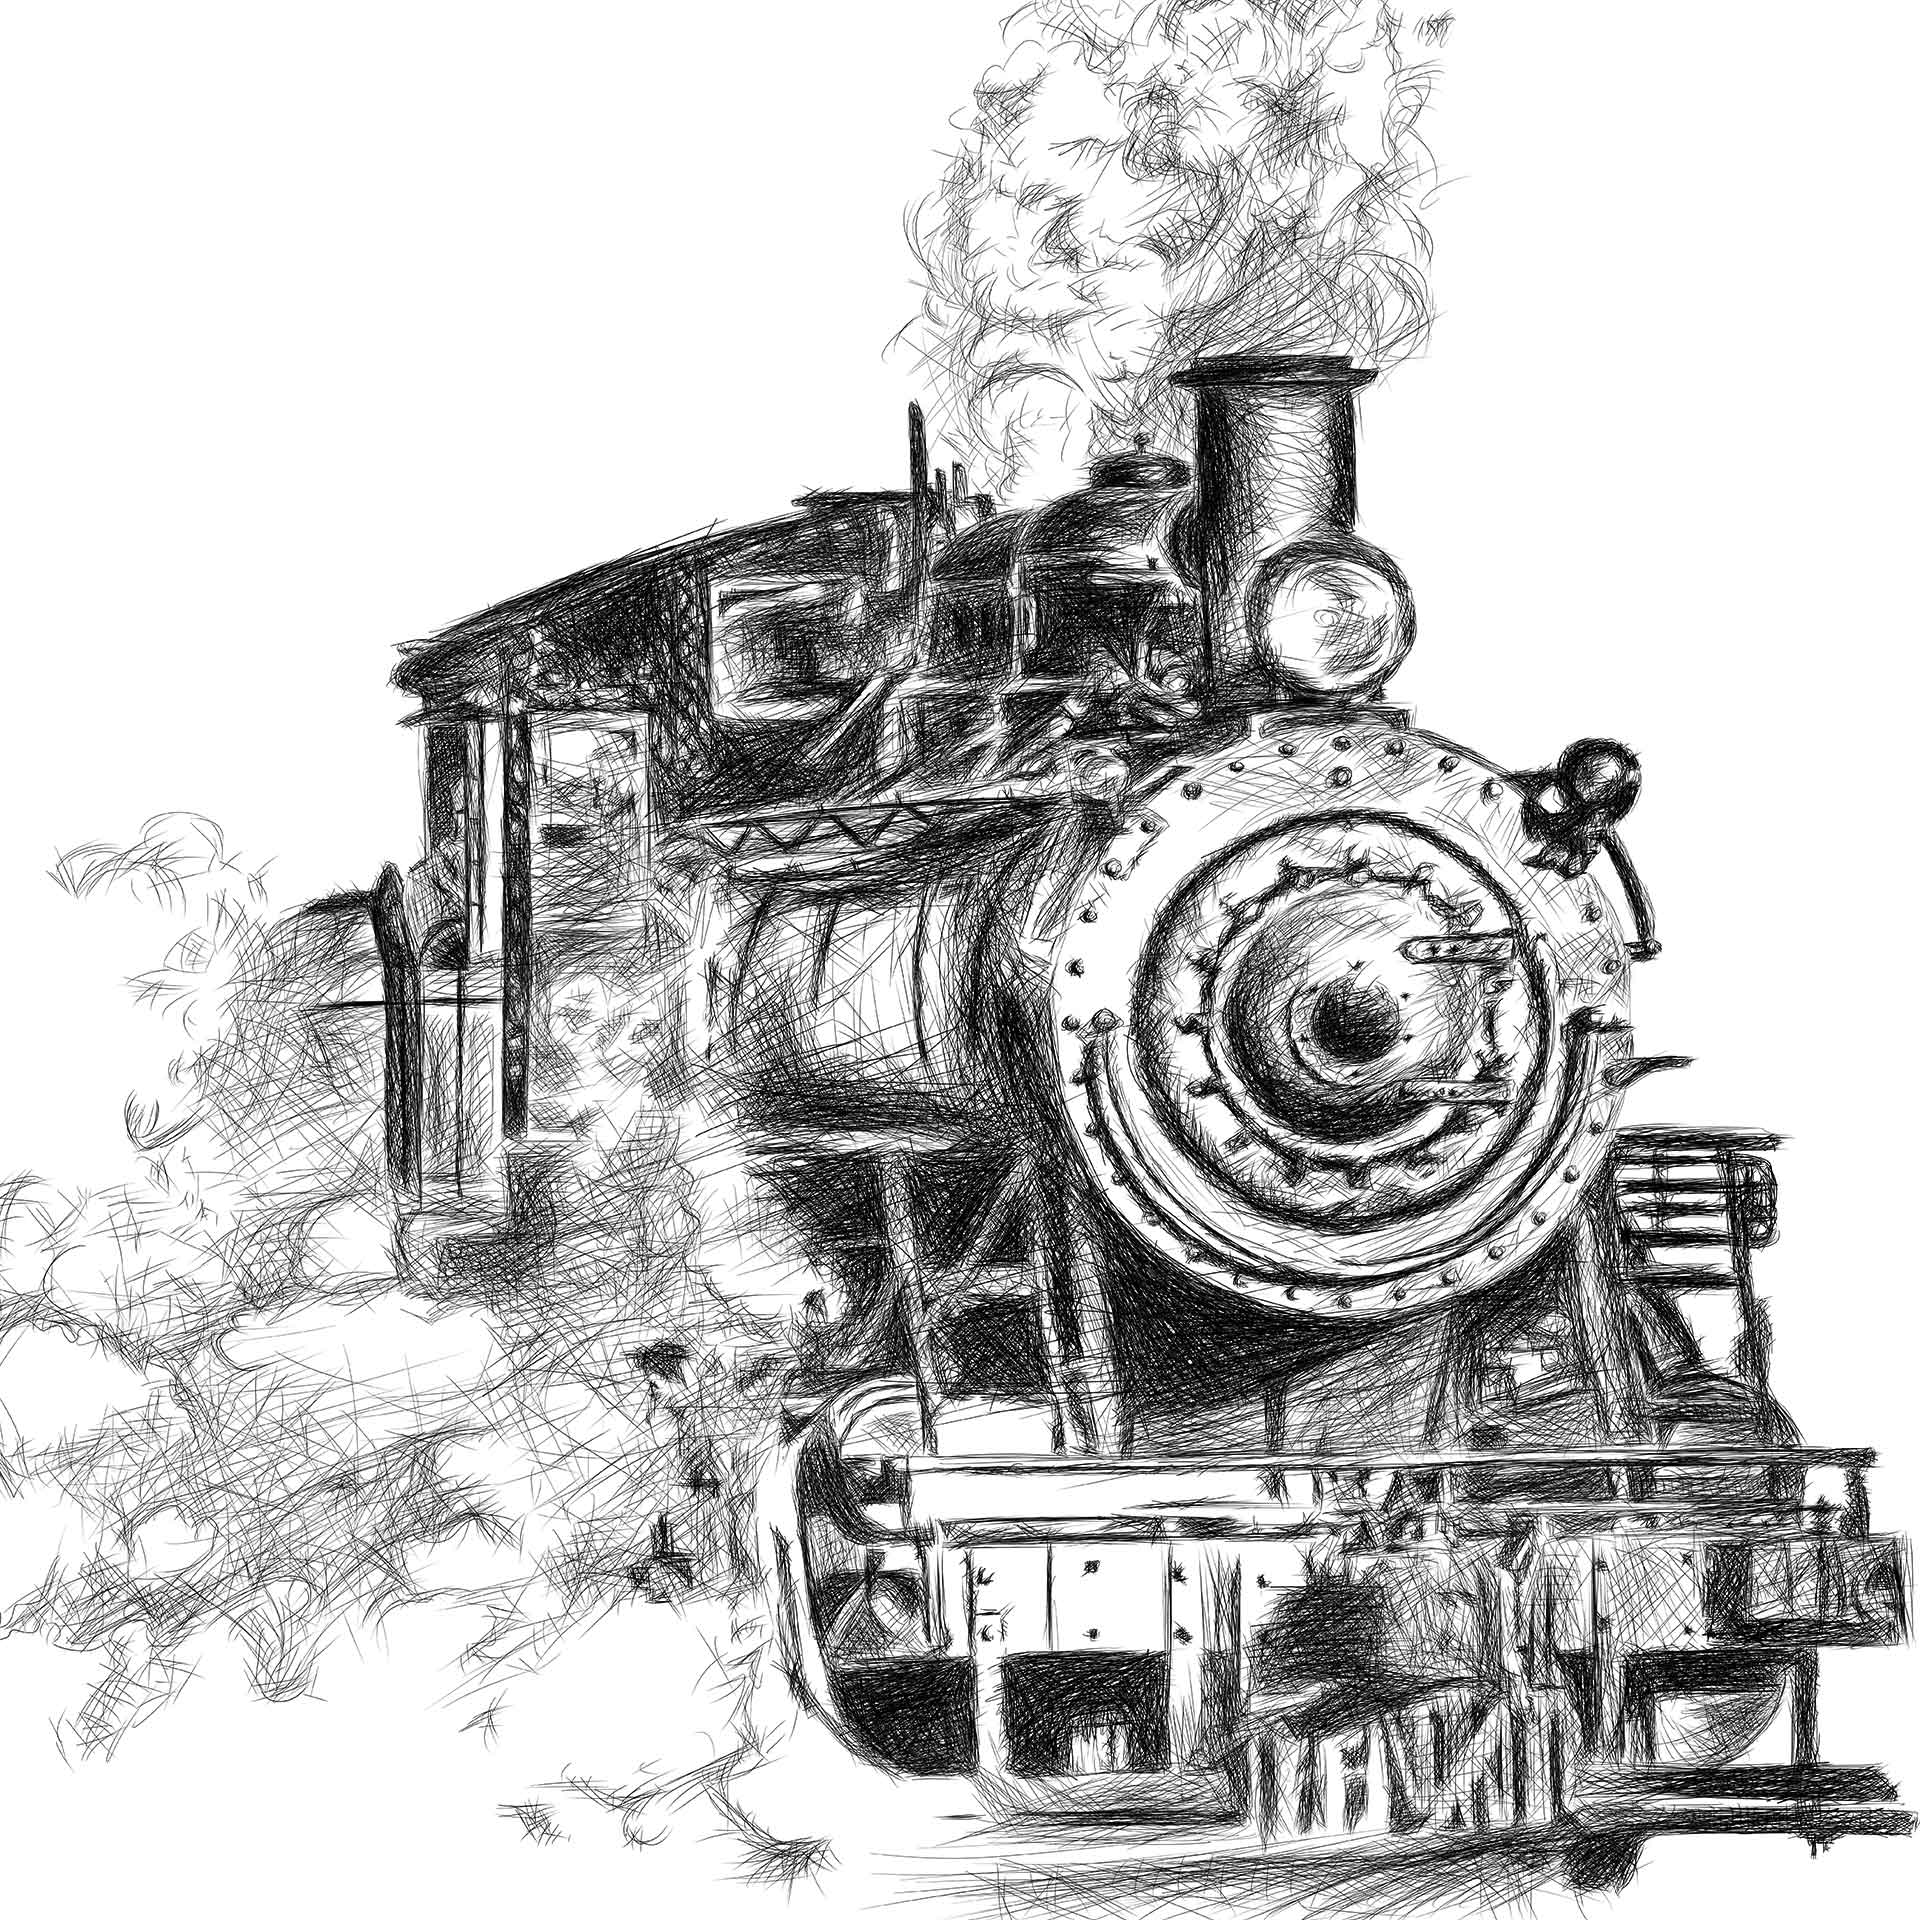 Orient Express train illustration digital pencil lines איור קטר רכבת עיפרון דיגיטלי